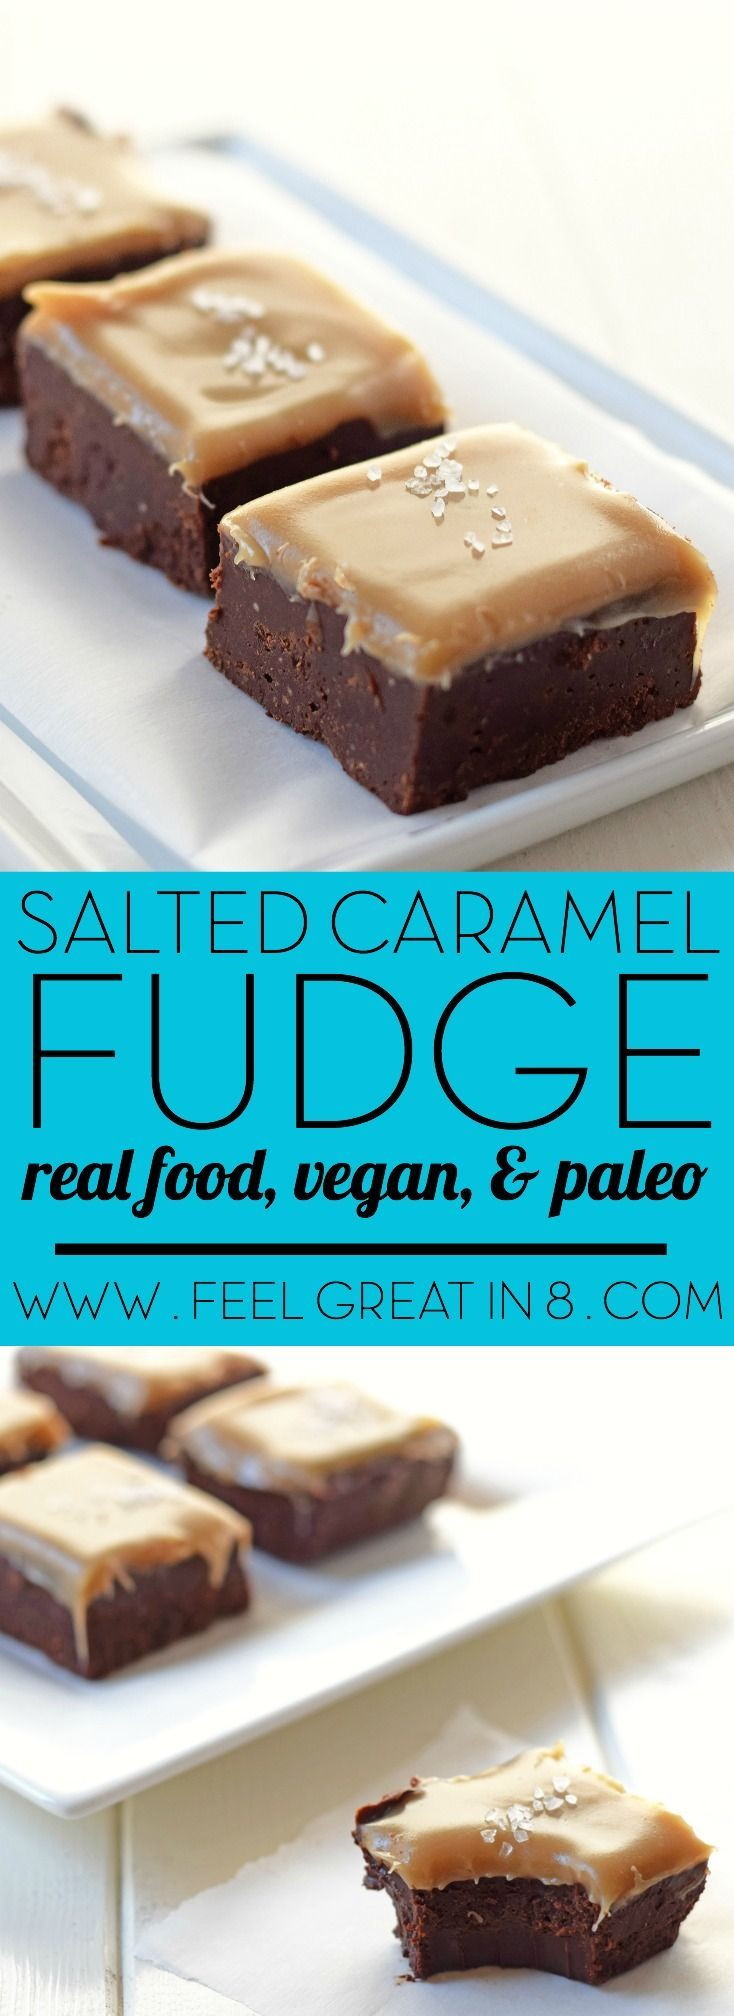 Caramel Fudge - Feel Great in 8 Blog Salted Caramel Fudge - A healthy dessert recipe that doesn't taste healthy! All real food ingredients, vegan, dairy-free, and refined sugar-free! A decadent treat you can feel good about. | Feel Great in 8Salted Caramel Fudge - A healthy dessert recipe that doesn't taste healthy! All real food ingredients, vegan, da...